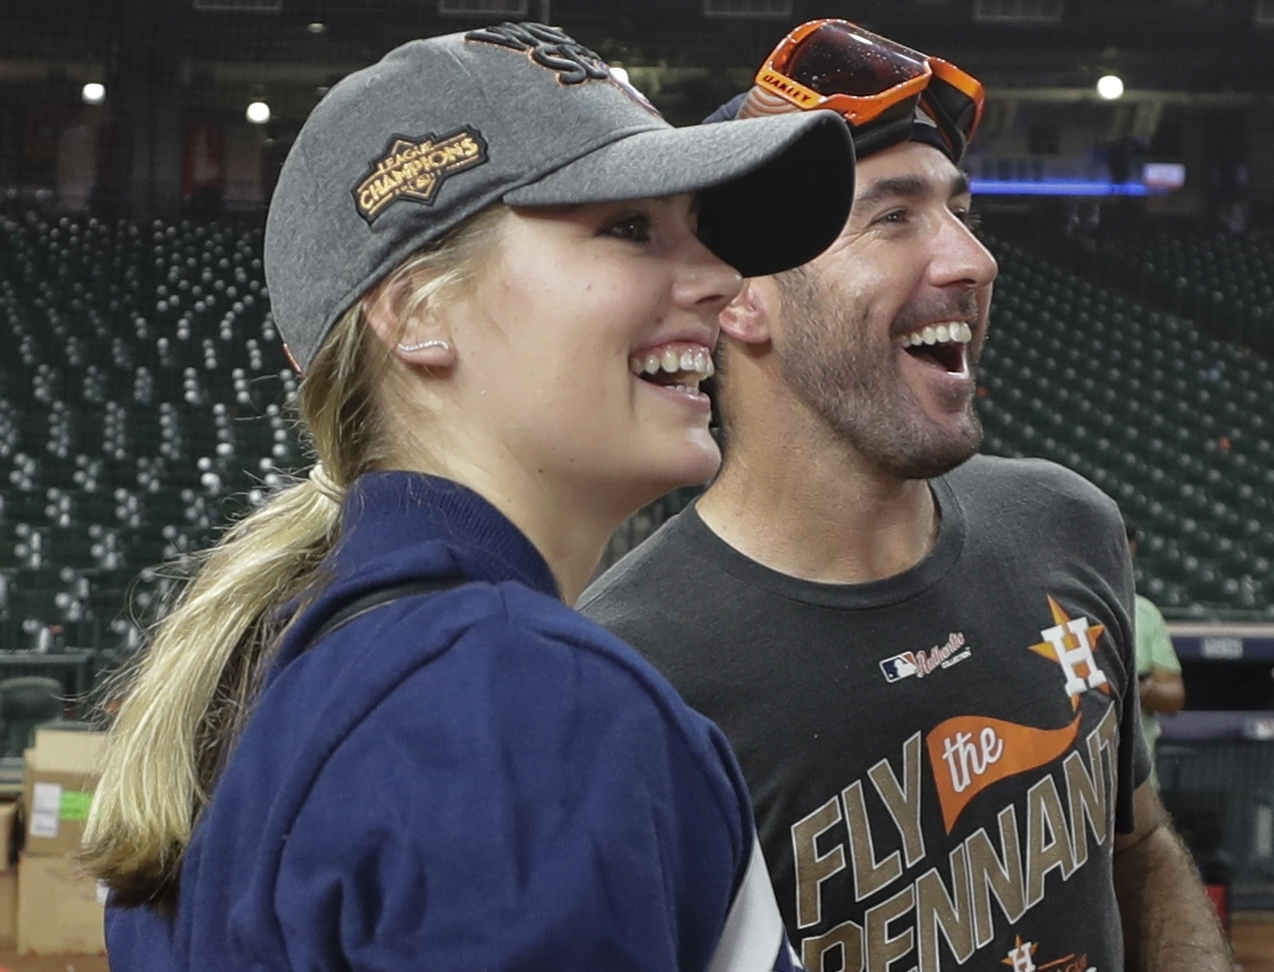 <div class='meta'><div class='origin-logo' data-origin='AP'></div><span class='caption-text' data-credit='AP'>The outfits of Kate Upton during Astros games</span></div>